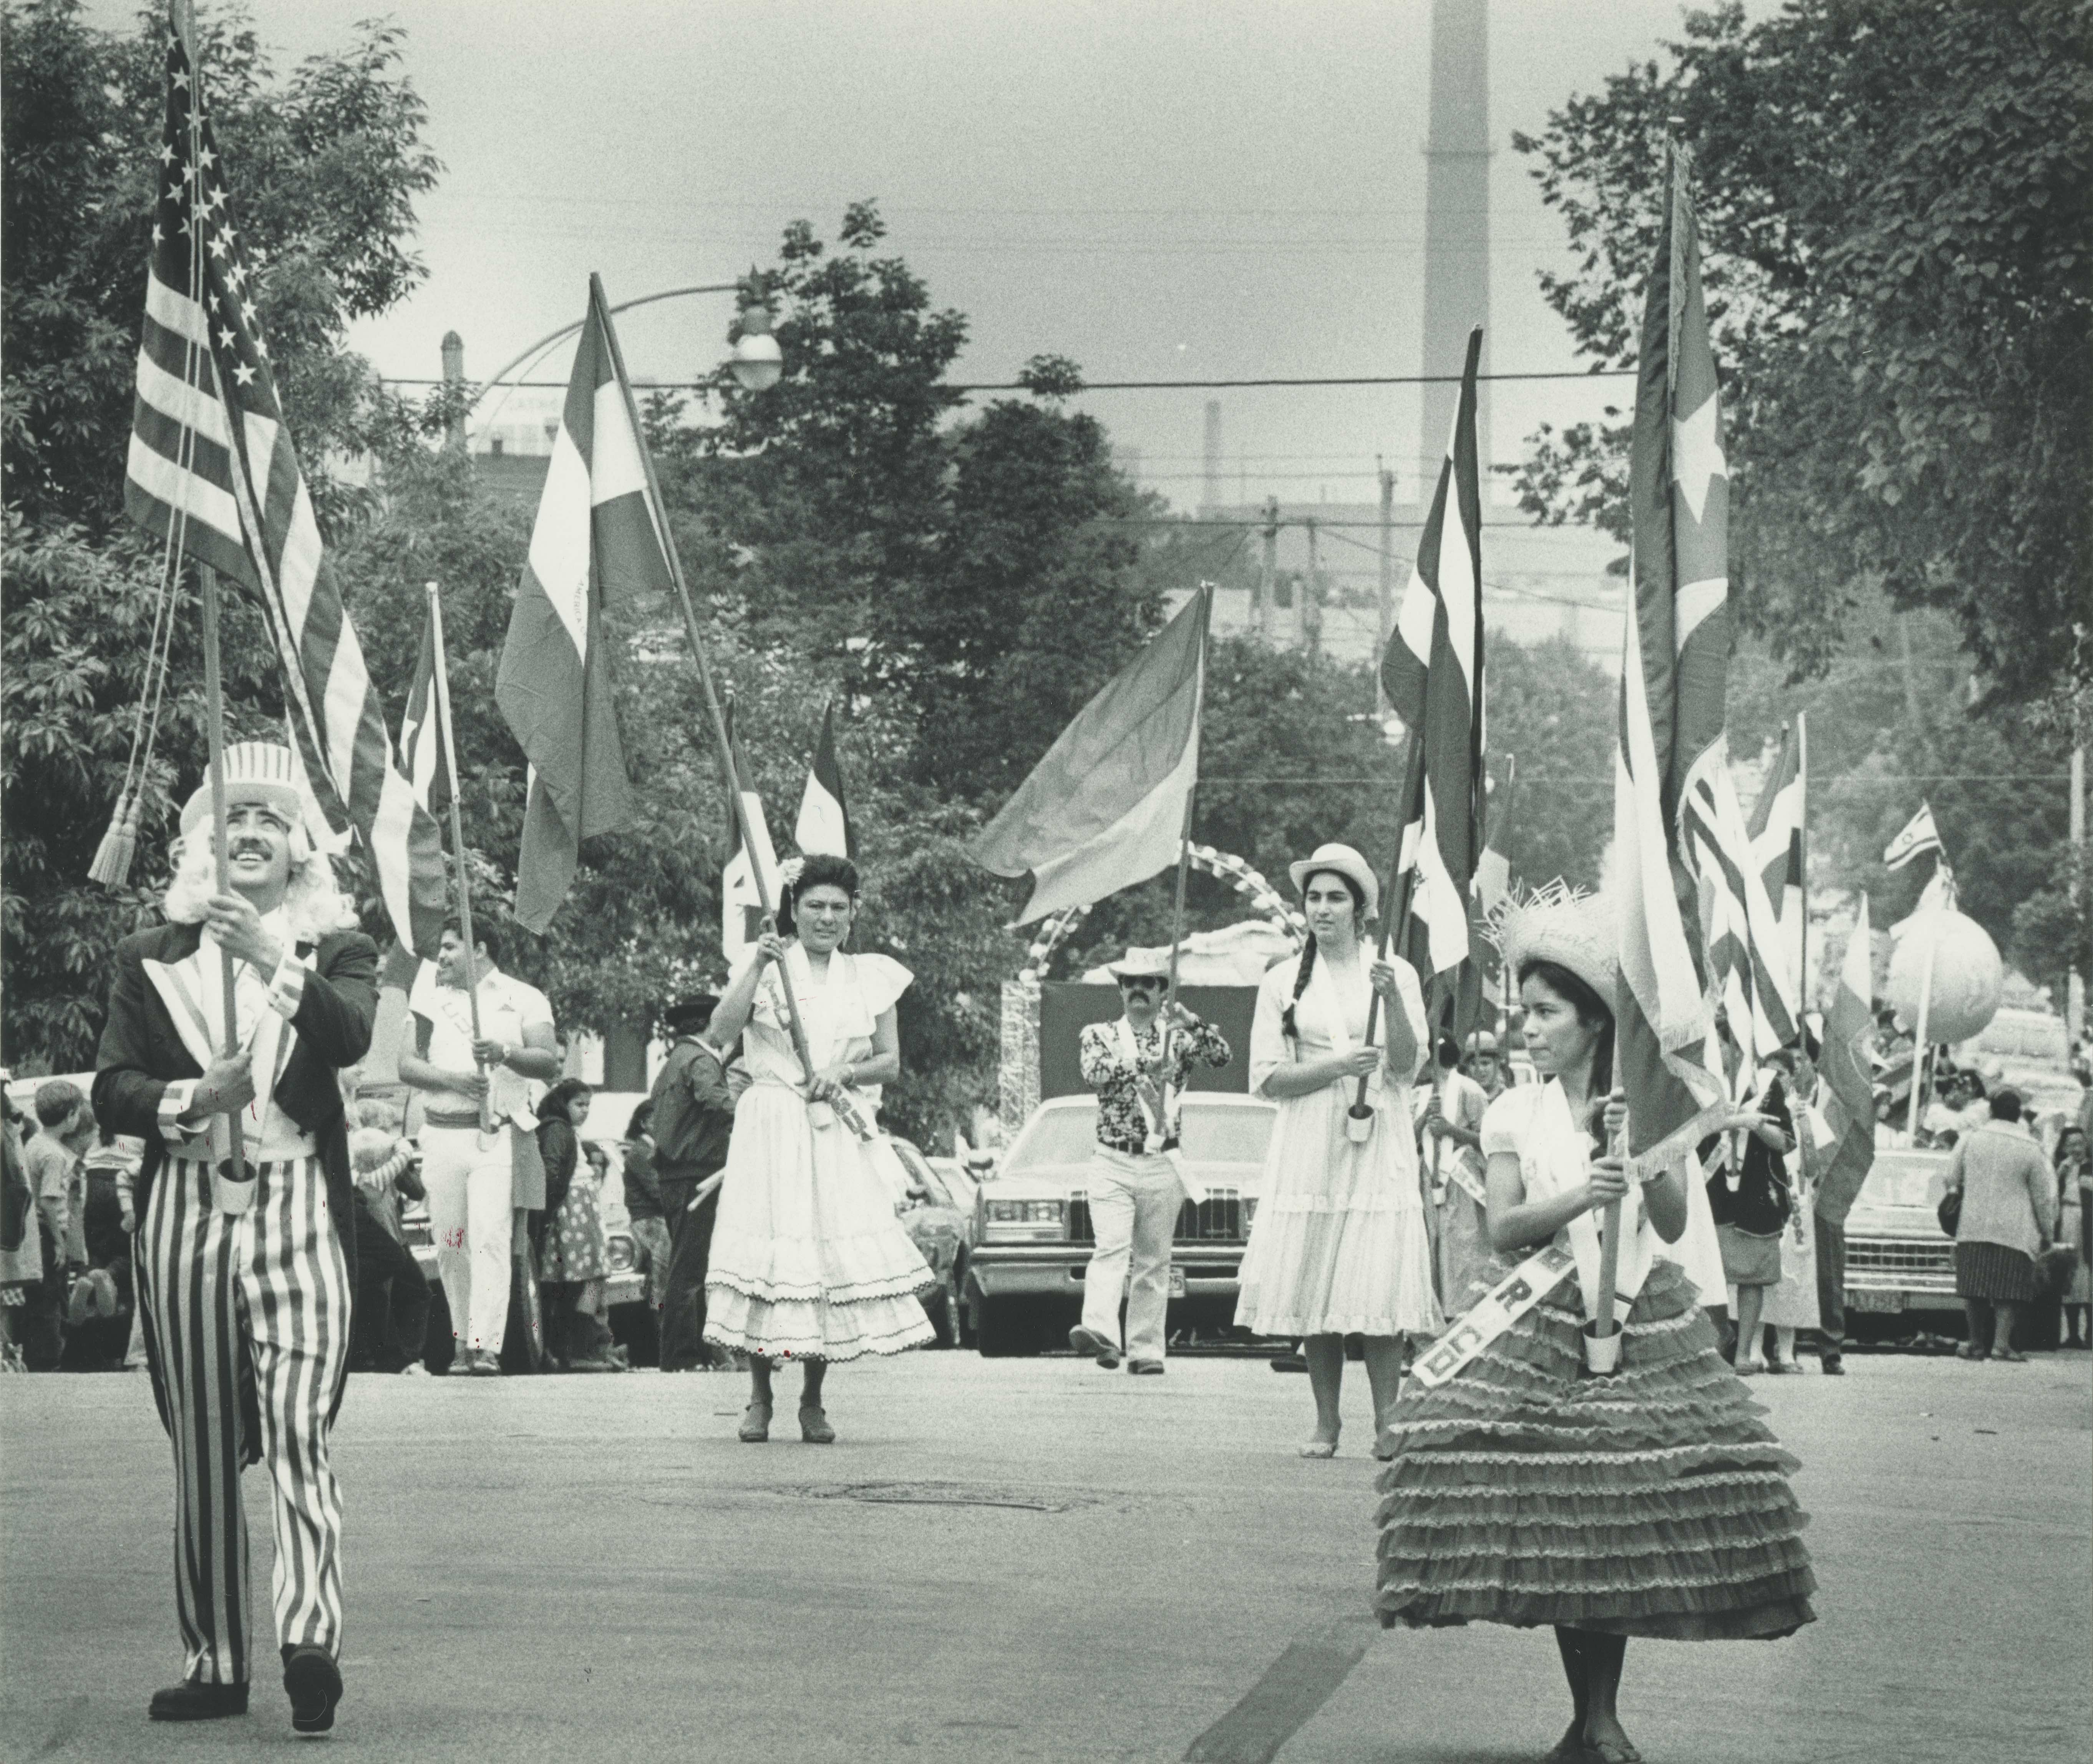 <table class=&quot;lightbox&quot;><tr><td colspan=2 class=&quot;lightbox-title&quot;>Mexican Fiesta Parade</td></tr><tr><td colspan=2 class=&quot;lightbox-caption&quot;>Men and women wearing costumes and carrying flags parade down the street at part of Mexican Fiesta in 1984.</td></tr><tr><td colspan=2 class=&quot;lightbox-spacer&quot;></td></tr><tr class=&quot;lightbox-detail&quot;><td class=&quot;cell-title&quot;>Source: </td><td class=&quot;cell-value&quot;>From the Historic Photo Collection of the Milwaukee Public Library. Reprinted with permission.<br /><a href=&quot;http://content.mpl.org/cdm/singleitem/collection/HstoricPho/id/5665/rec/3&quot; target=&quot;_blank&quot;>Milwaukee Public Library</a></td></tr><tr class=&quot;filler-row&quot;><td colspan=2>&nbsp;</td></tr></table>